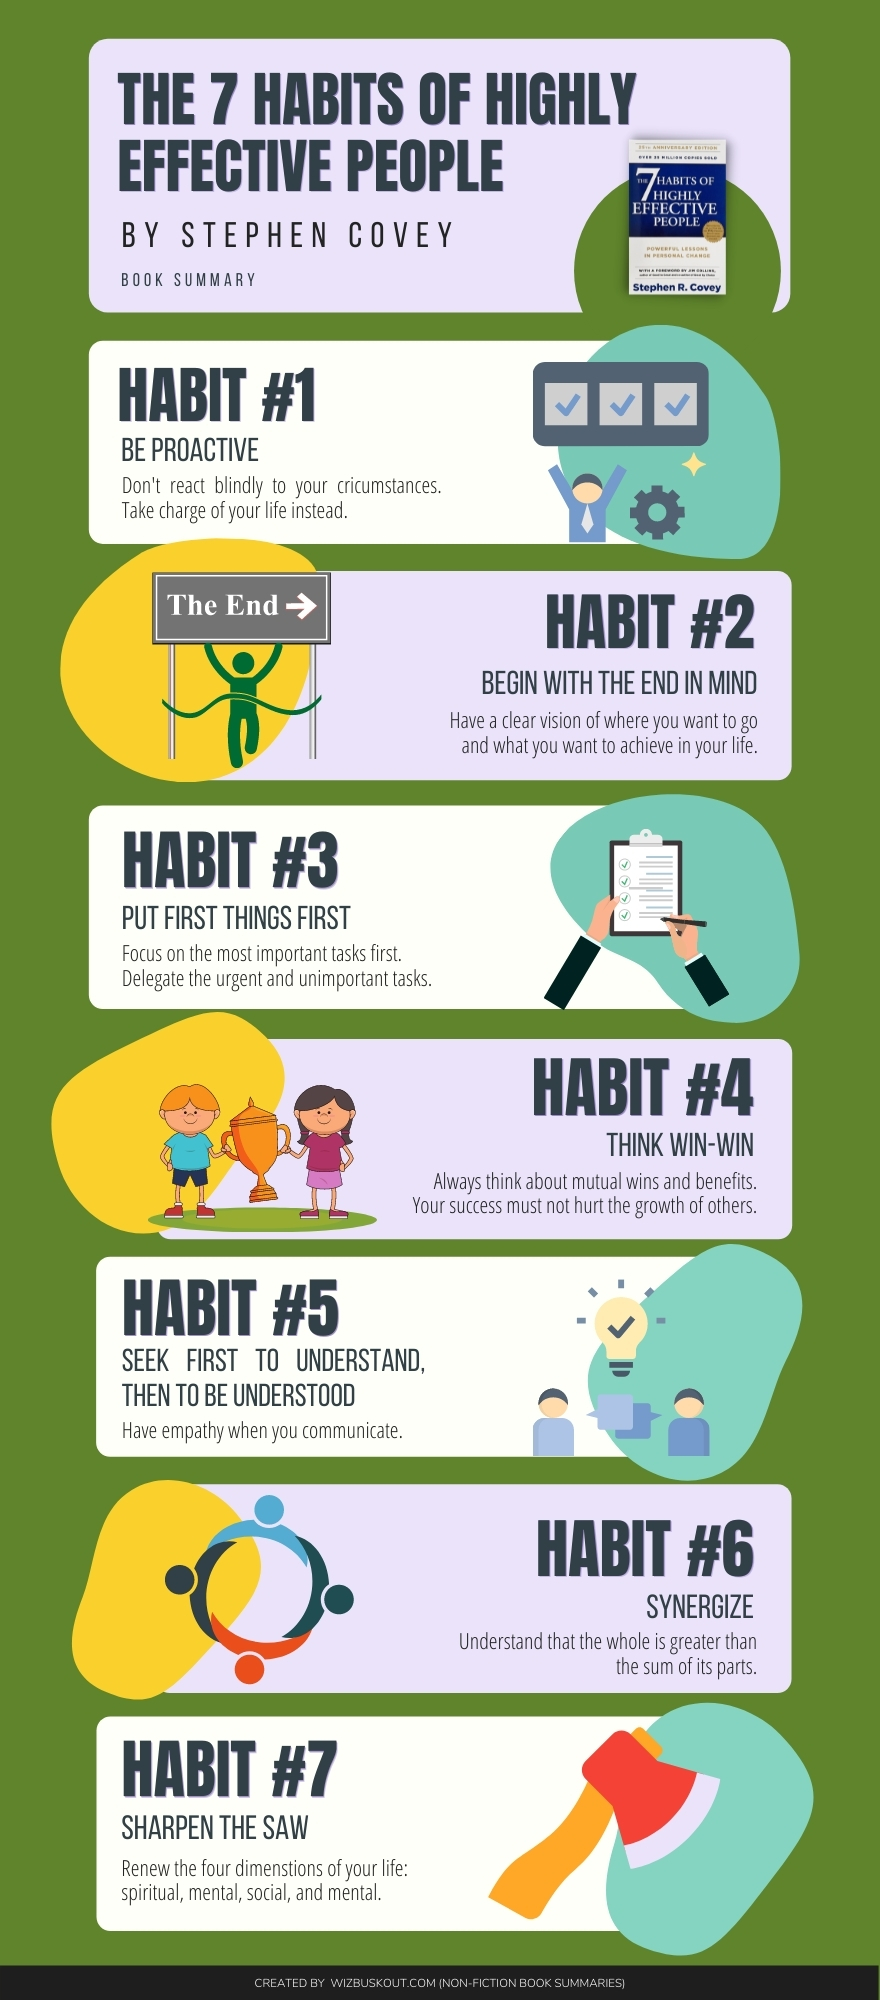 The 7 Habits Of Highly Effective People Summary Infographic